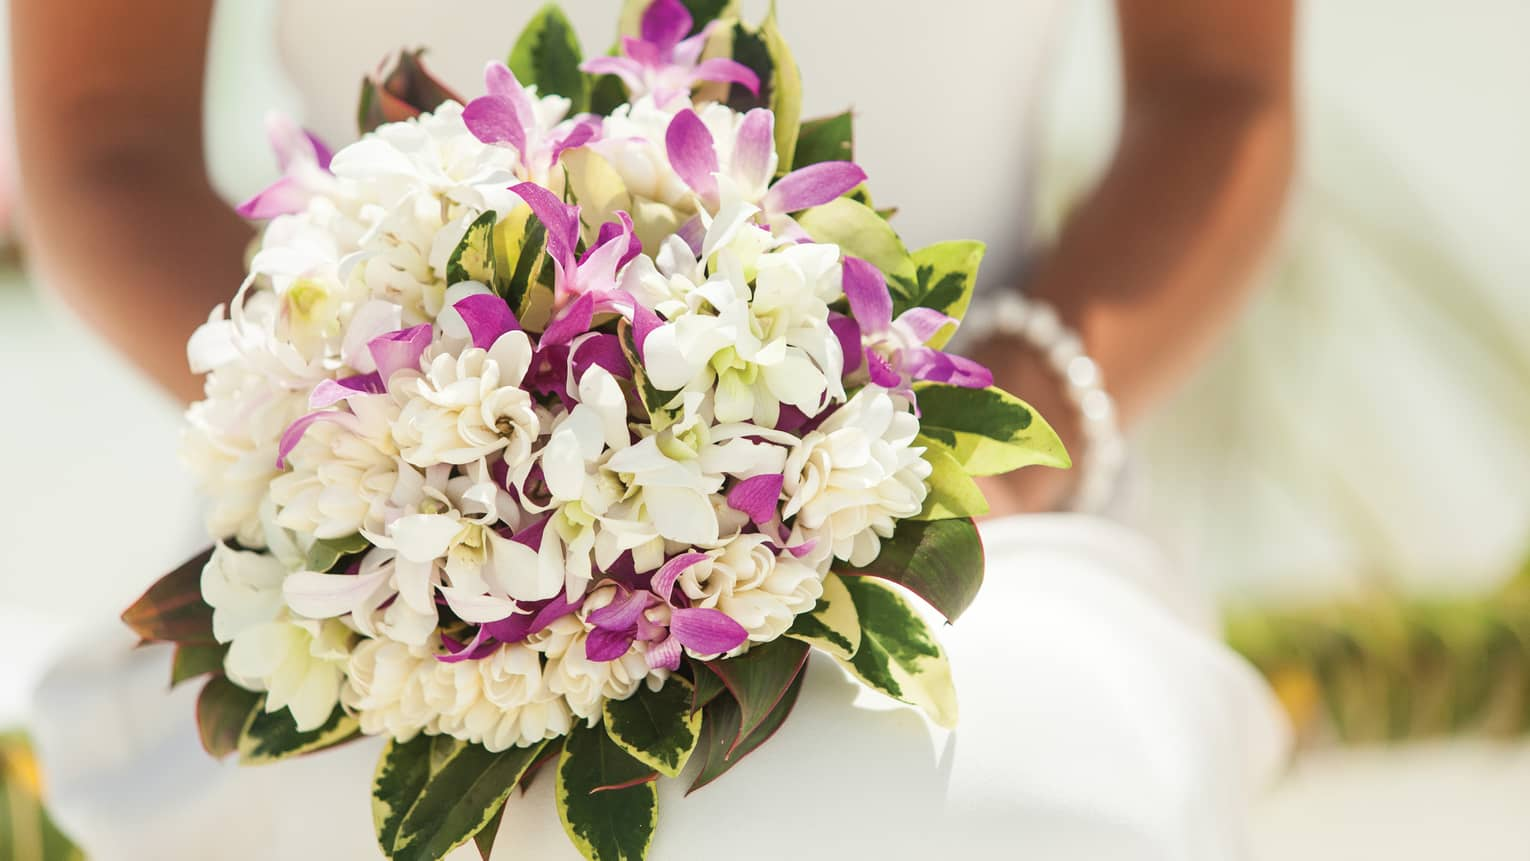 Close-up of bride holding wedding bouquet with purple and white flowers